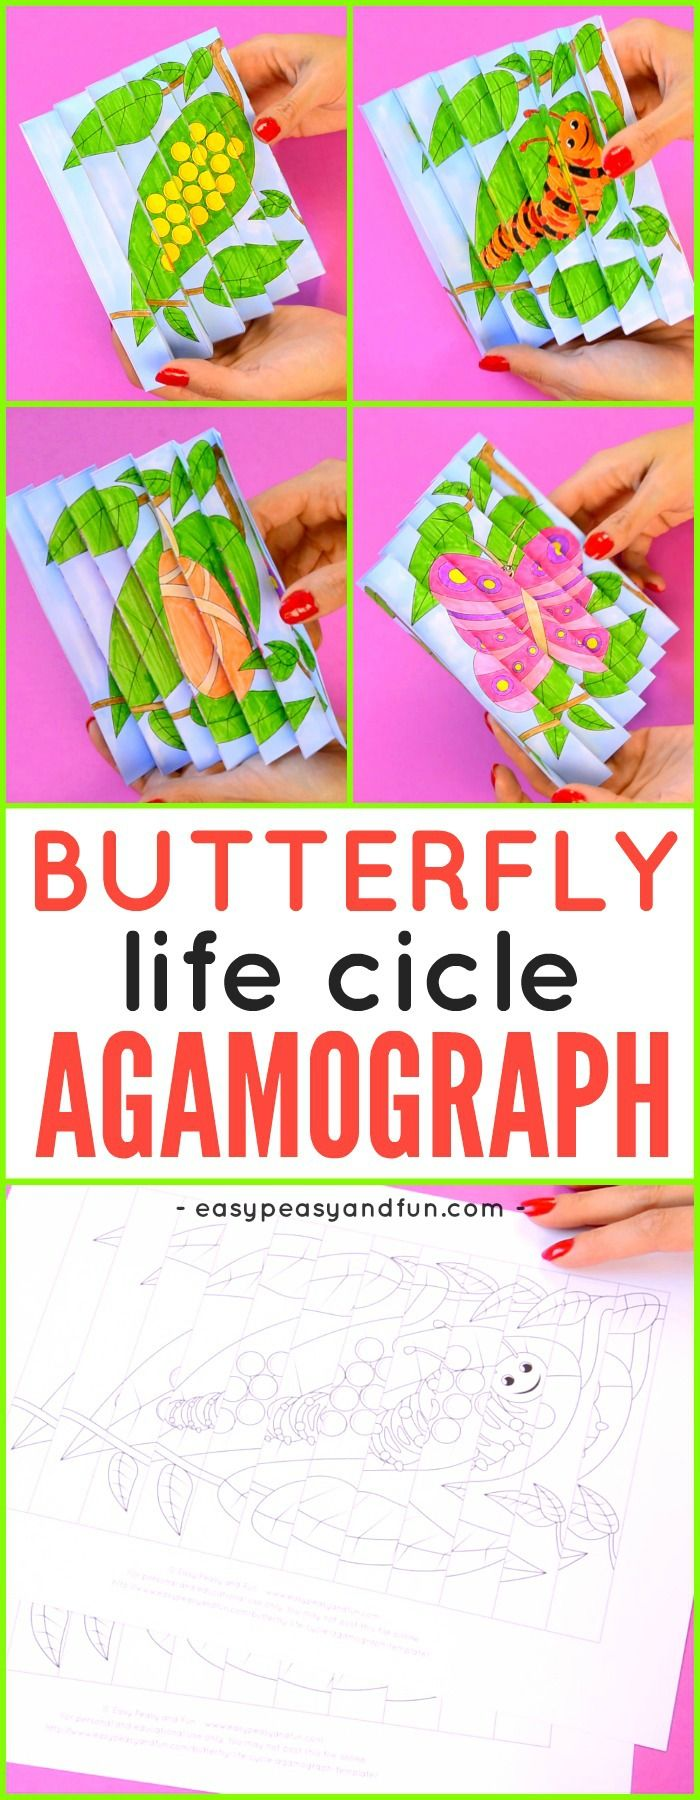 Printable Butterfly Life Cycle Agamograph Template Butterfly Life Cycle Agamograph Butterfly Printable